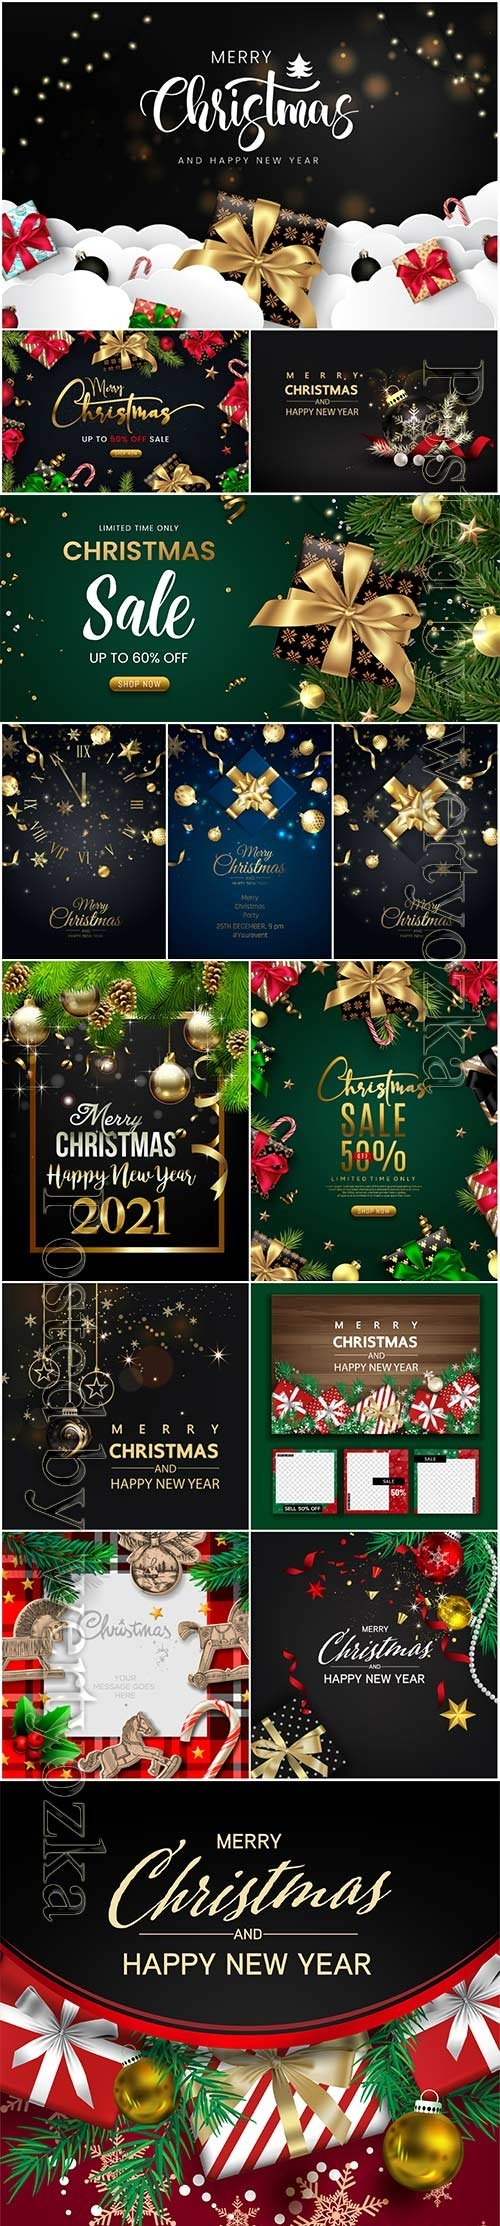 Merry christmas greeting card design with beautiful gifts packages